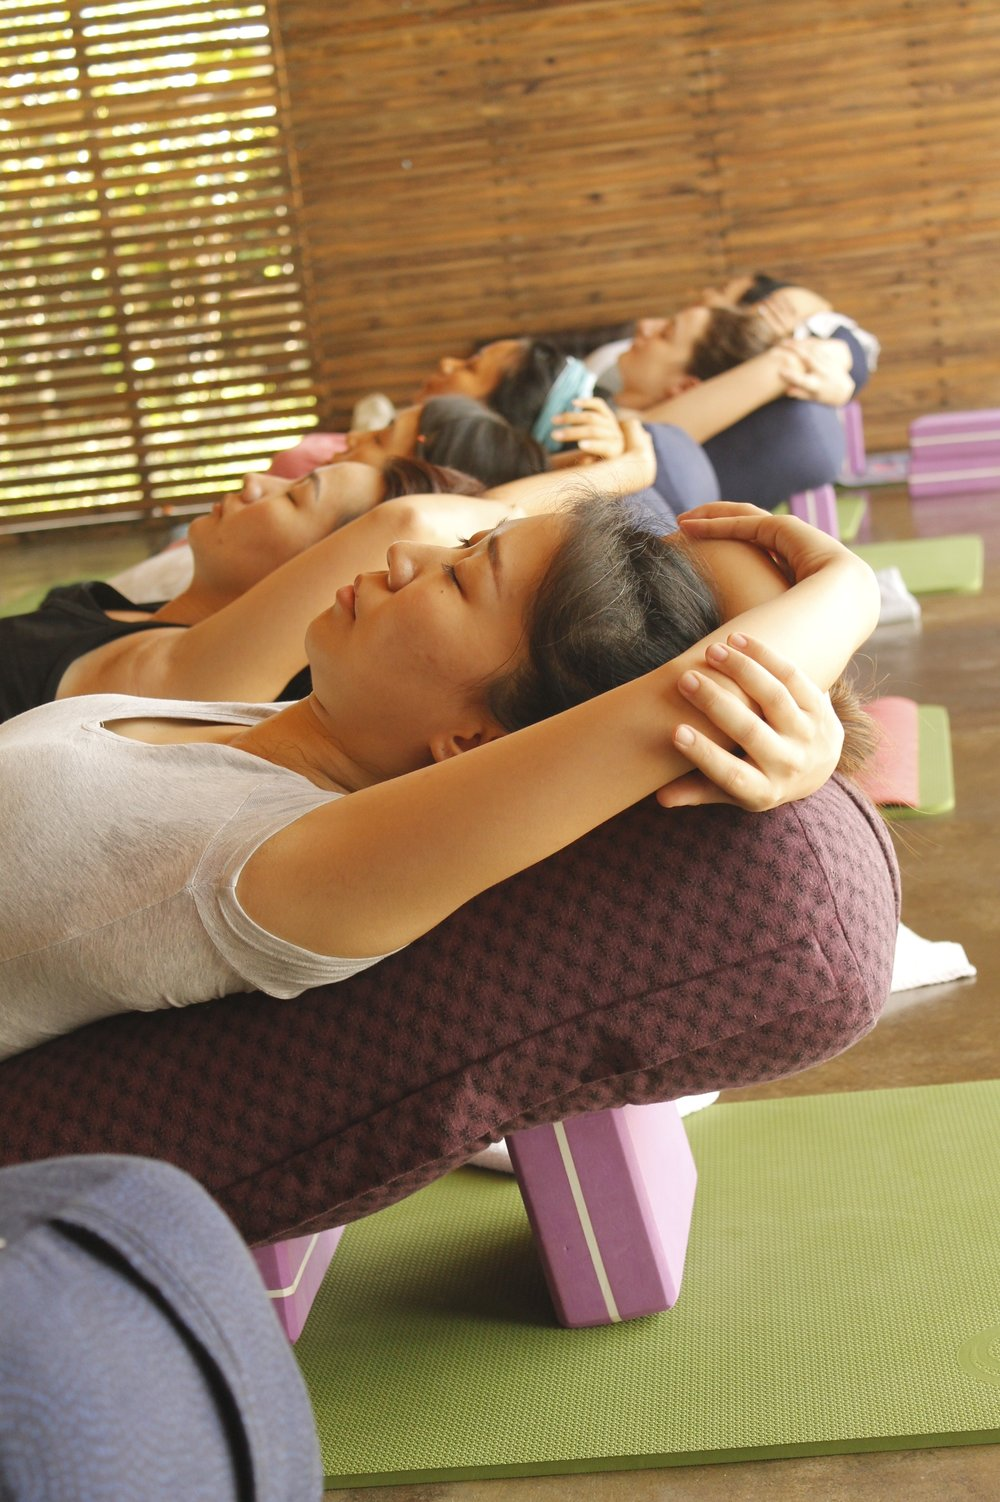 restorative-yoga-reiki-class-geelong-west-ocean-grove-victoria-australia